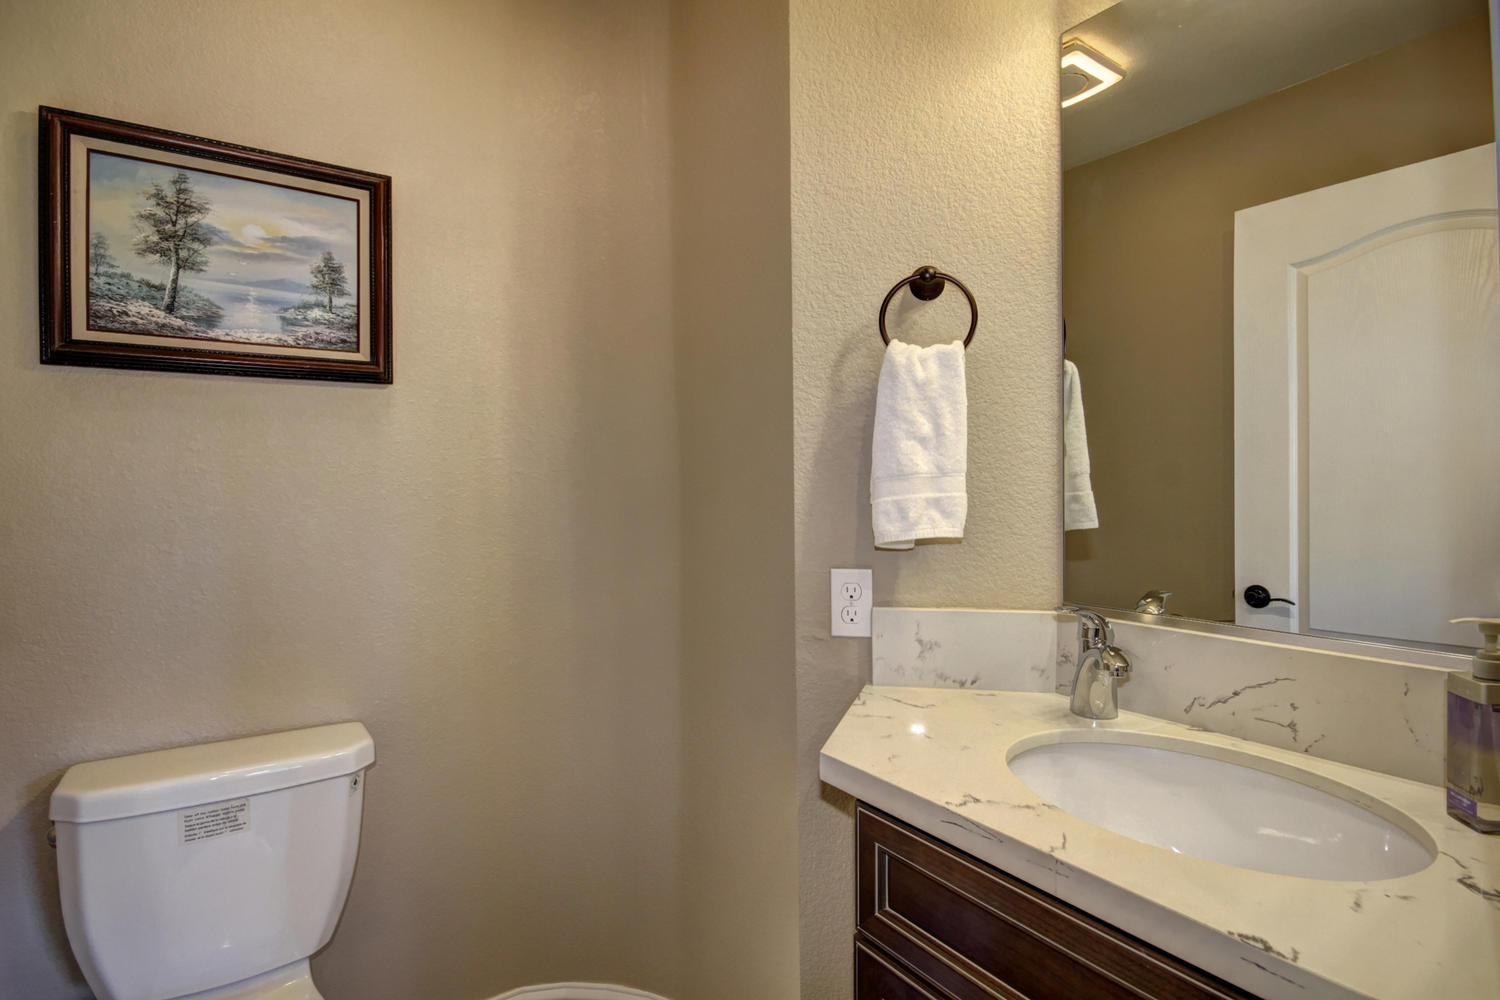 Bathroom Fixtures Roseville Ca 24 hour care assisted living, dementia & alzheimer's care